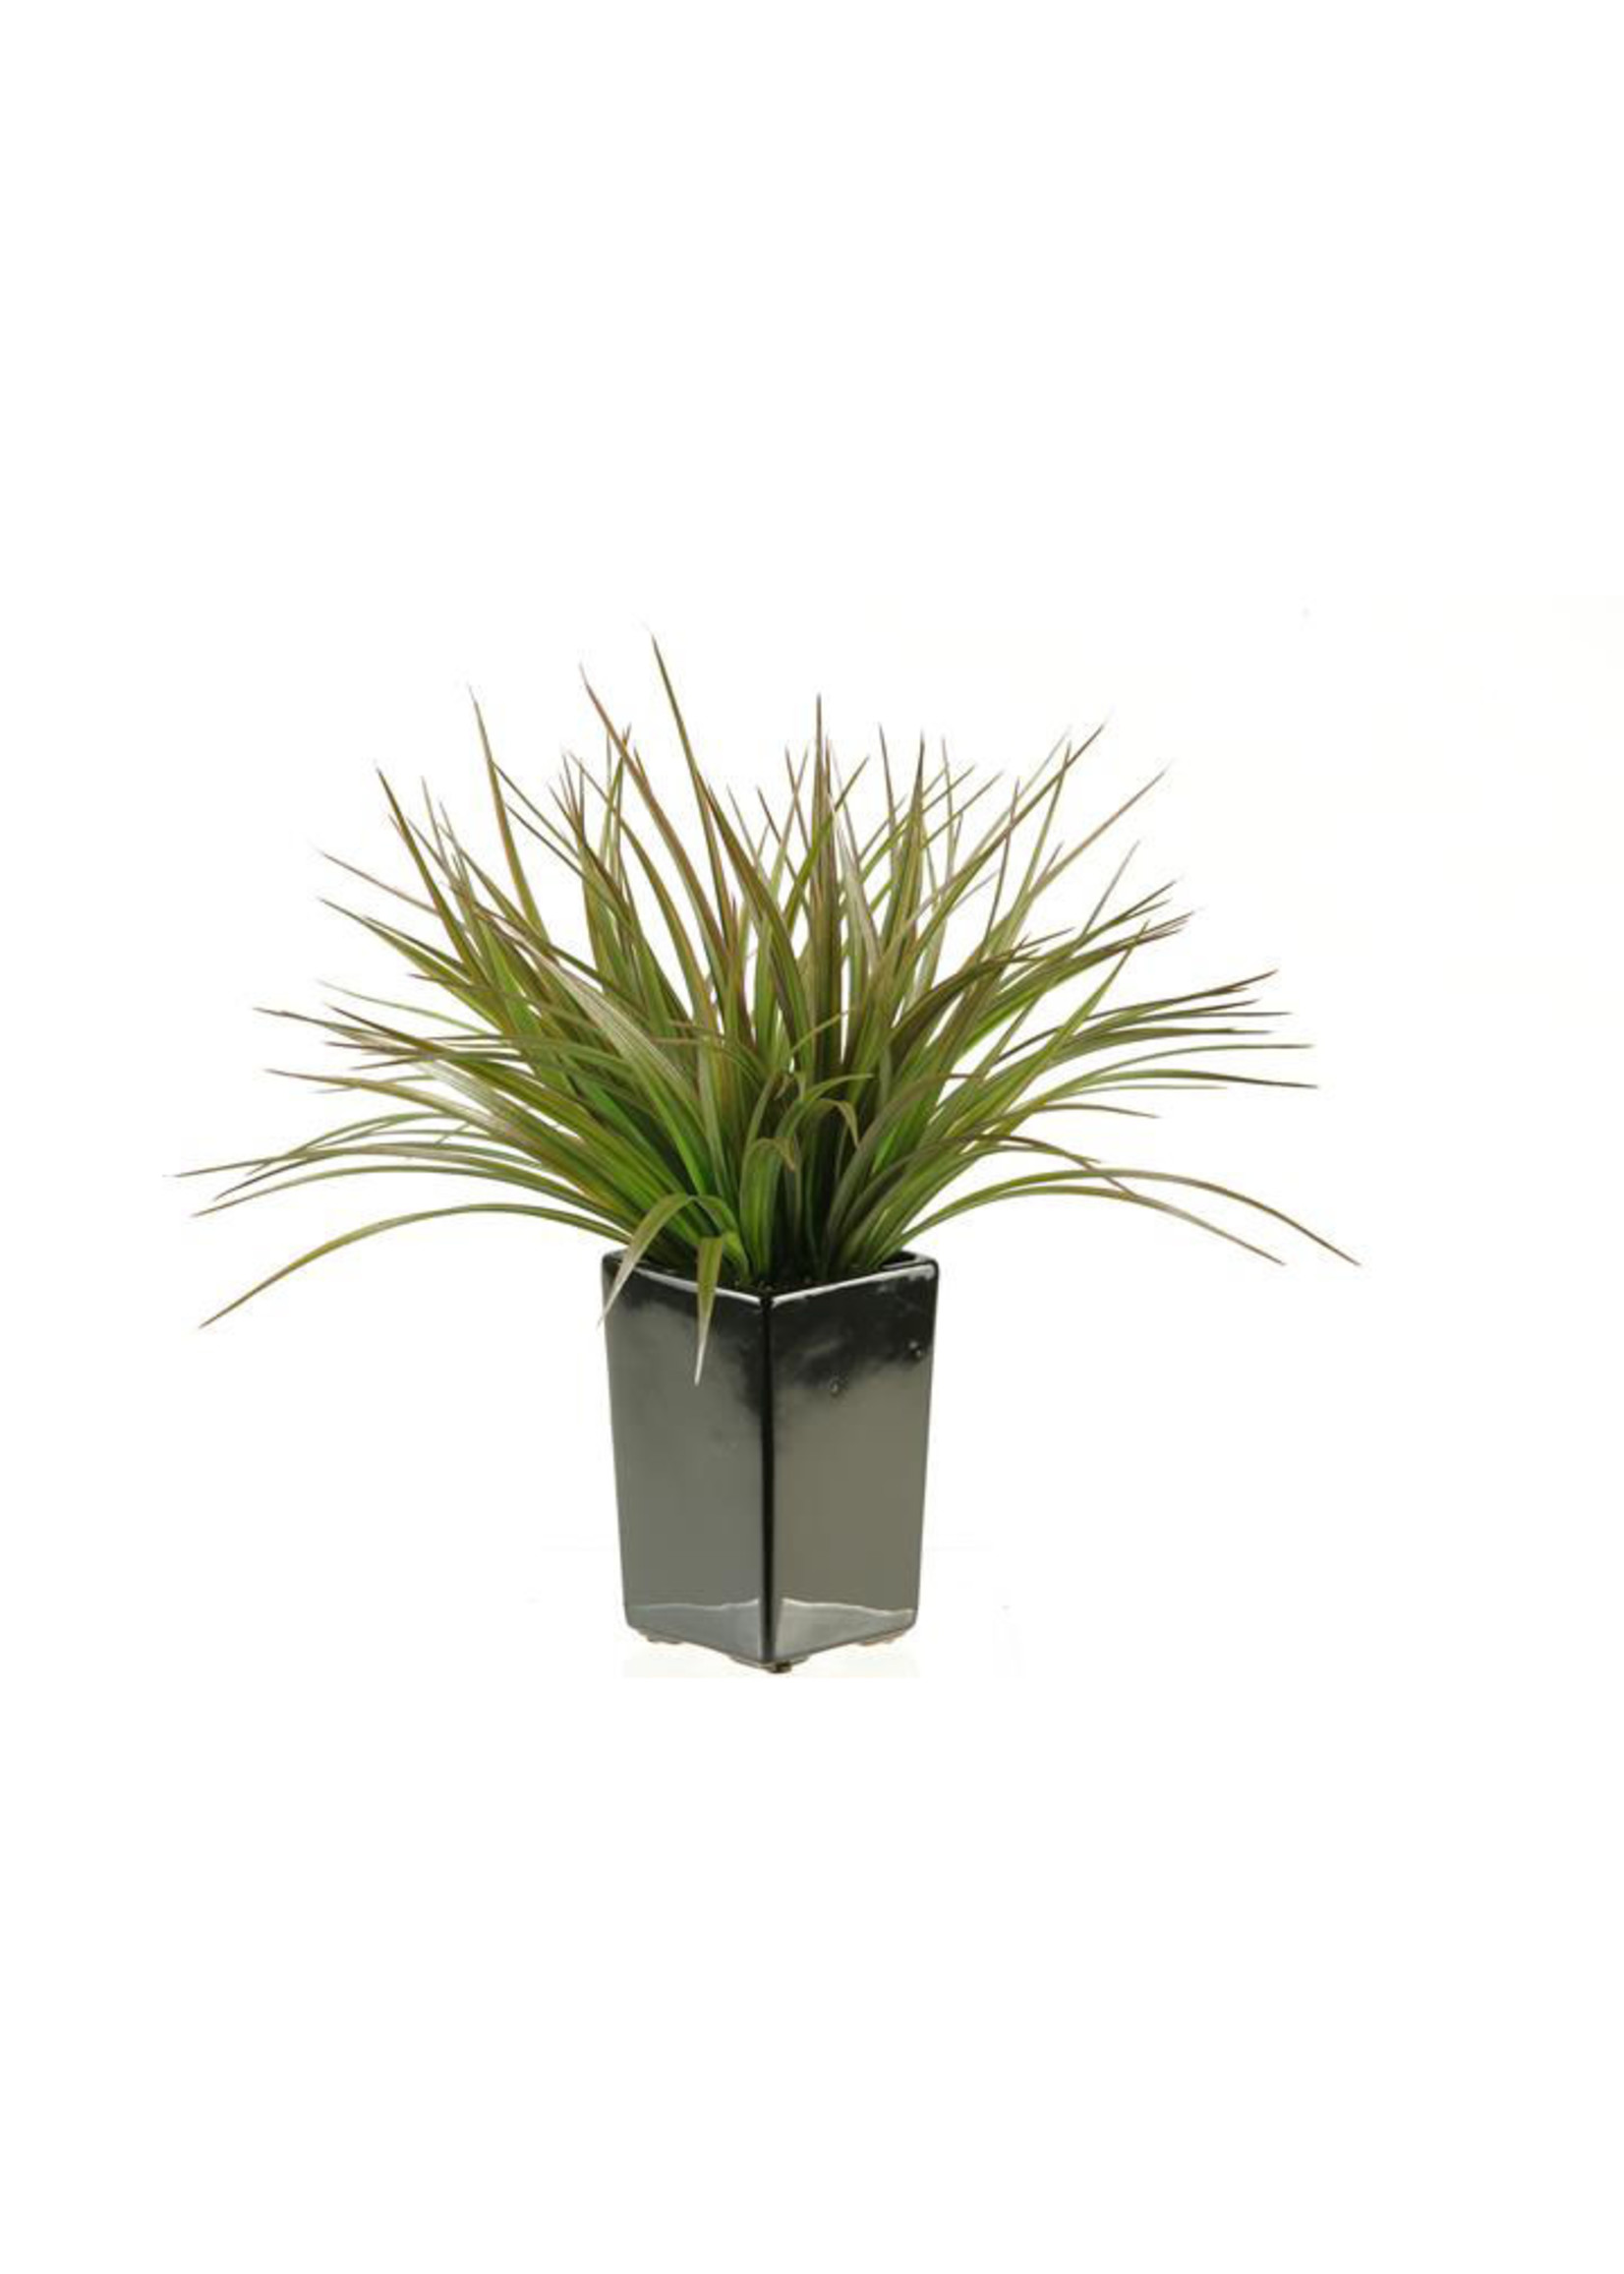 GREEN/BROWN GRASS IN SQUARE CONTAINER